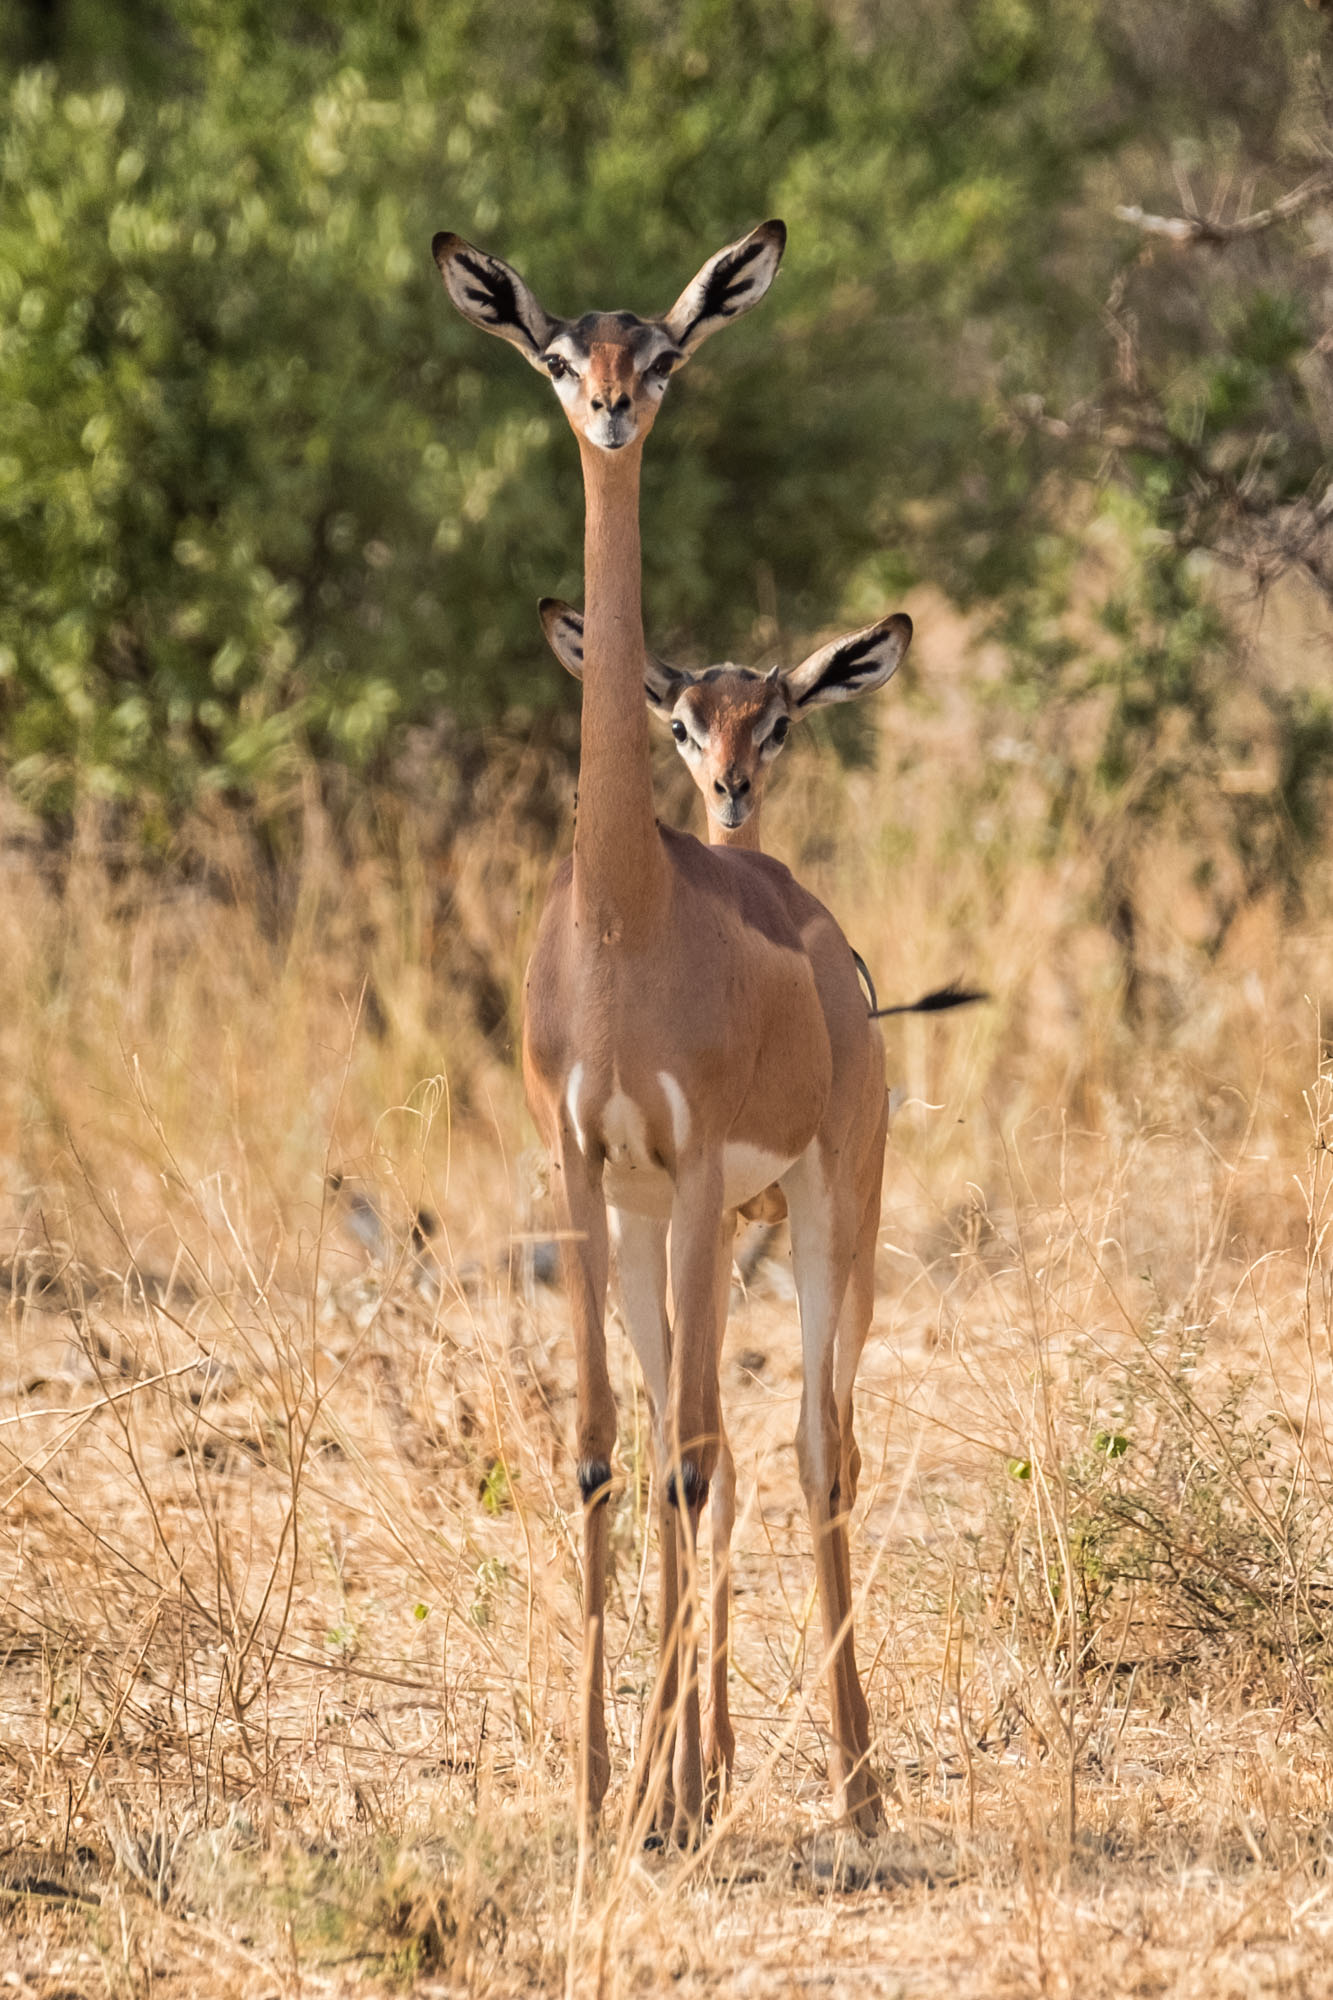 2garenuk-samburu-land-northern-kenya-2018-01-09.jpg